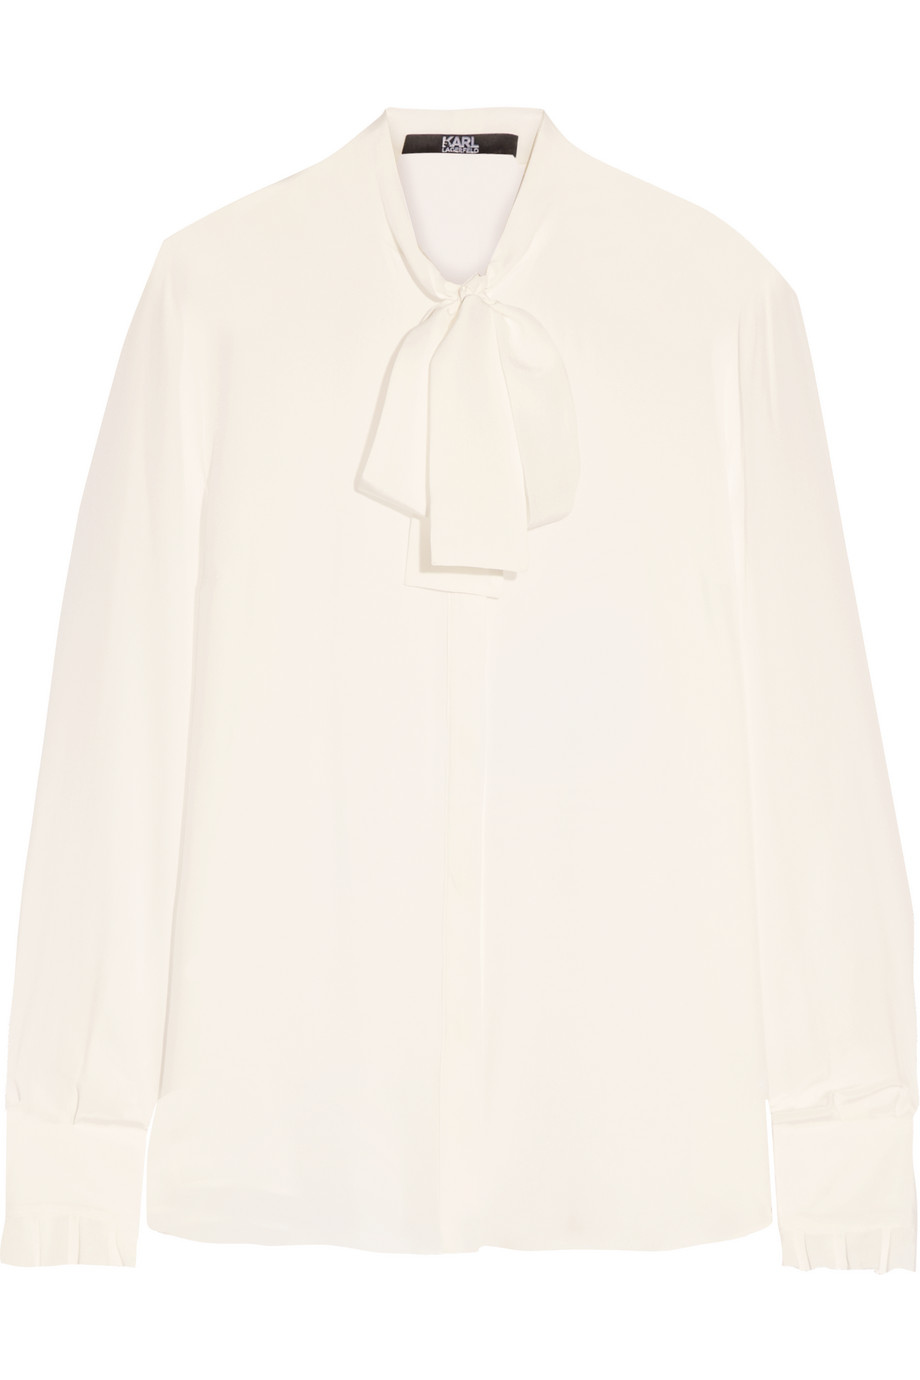 Karl Lagerfeld Pussy-Bow Silk-Georgette Blouse, White, Women's, Size: 44